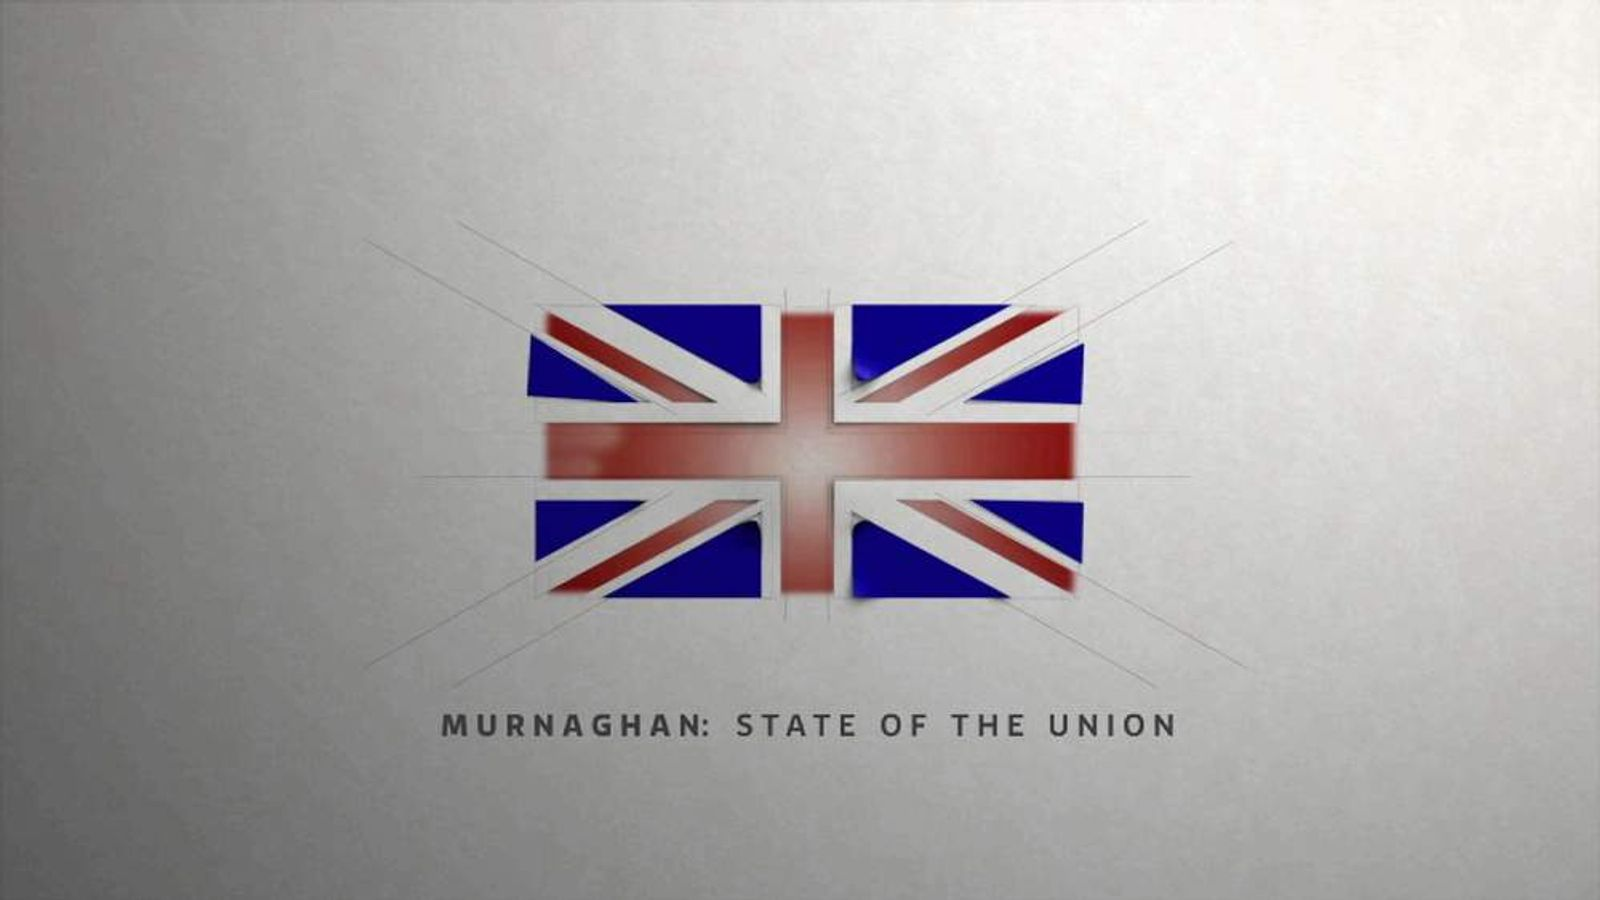 Sky's Dermot Murnaghan debates the 'State of the Union'.